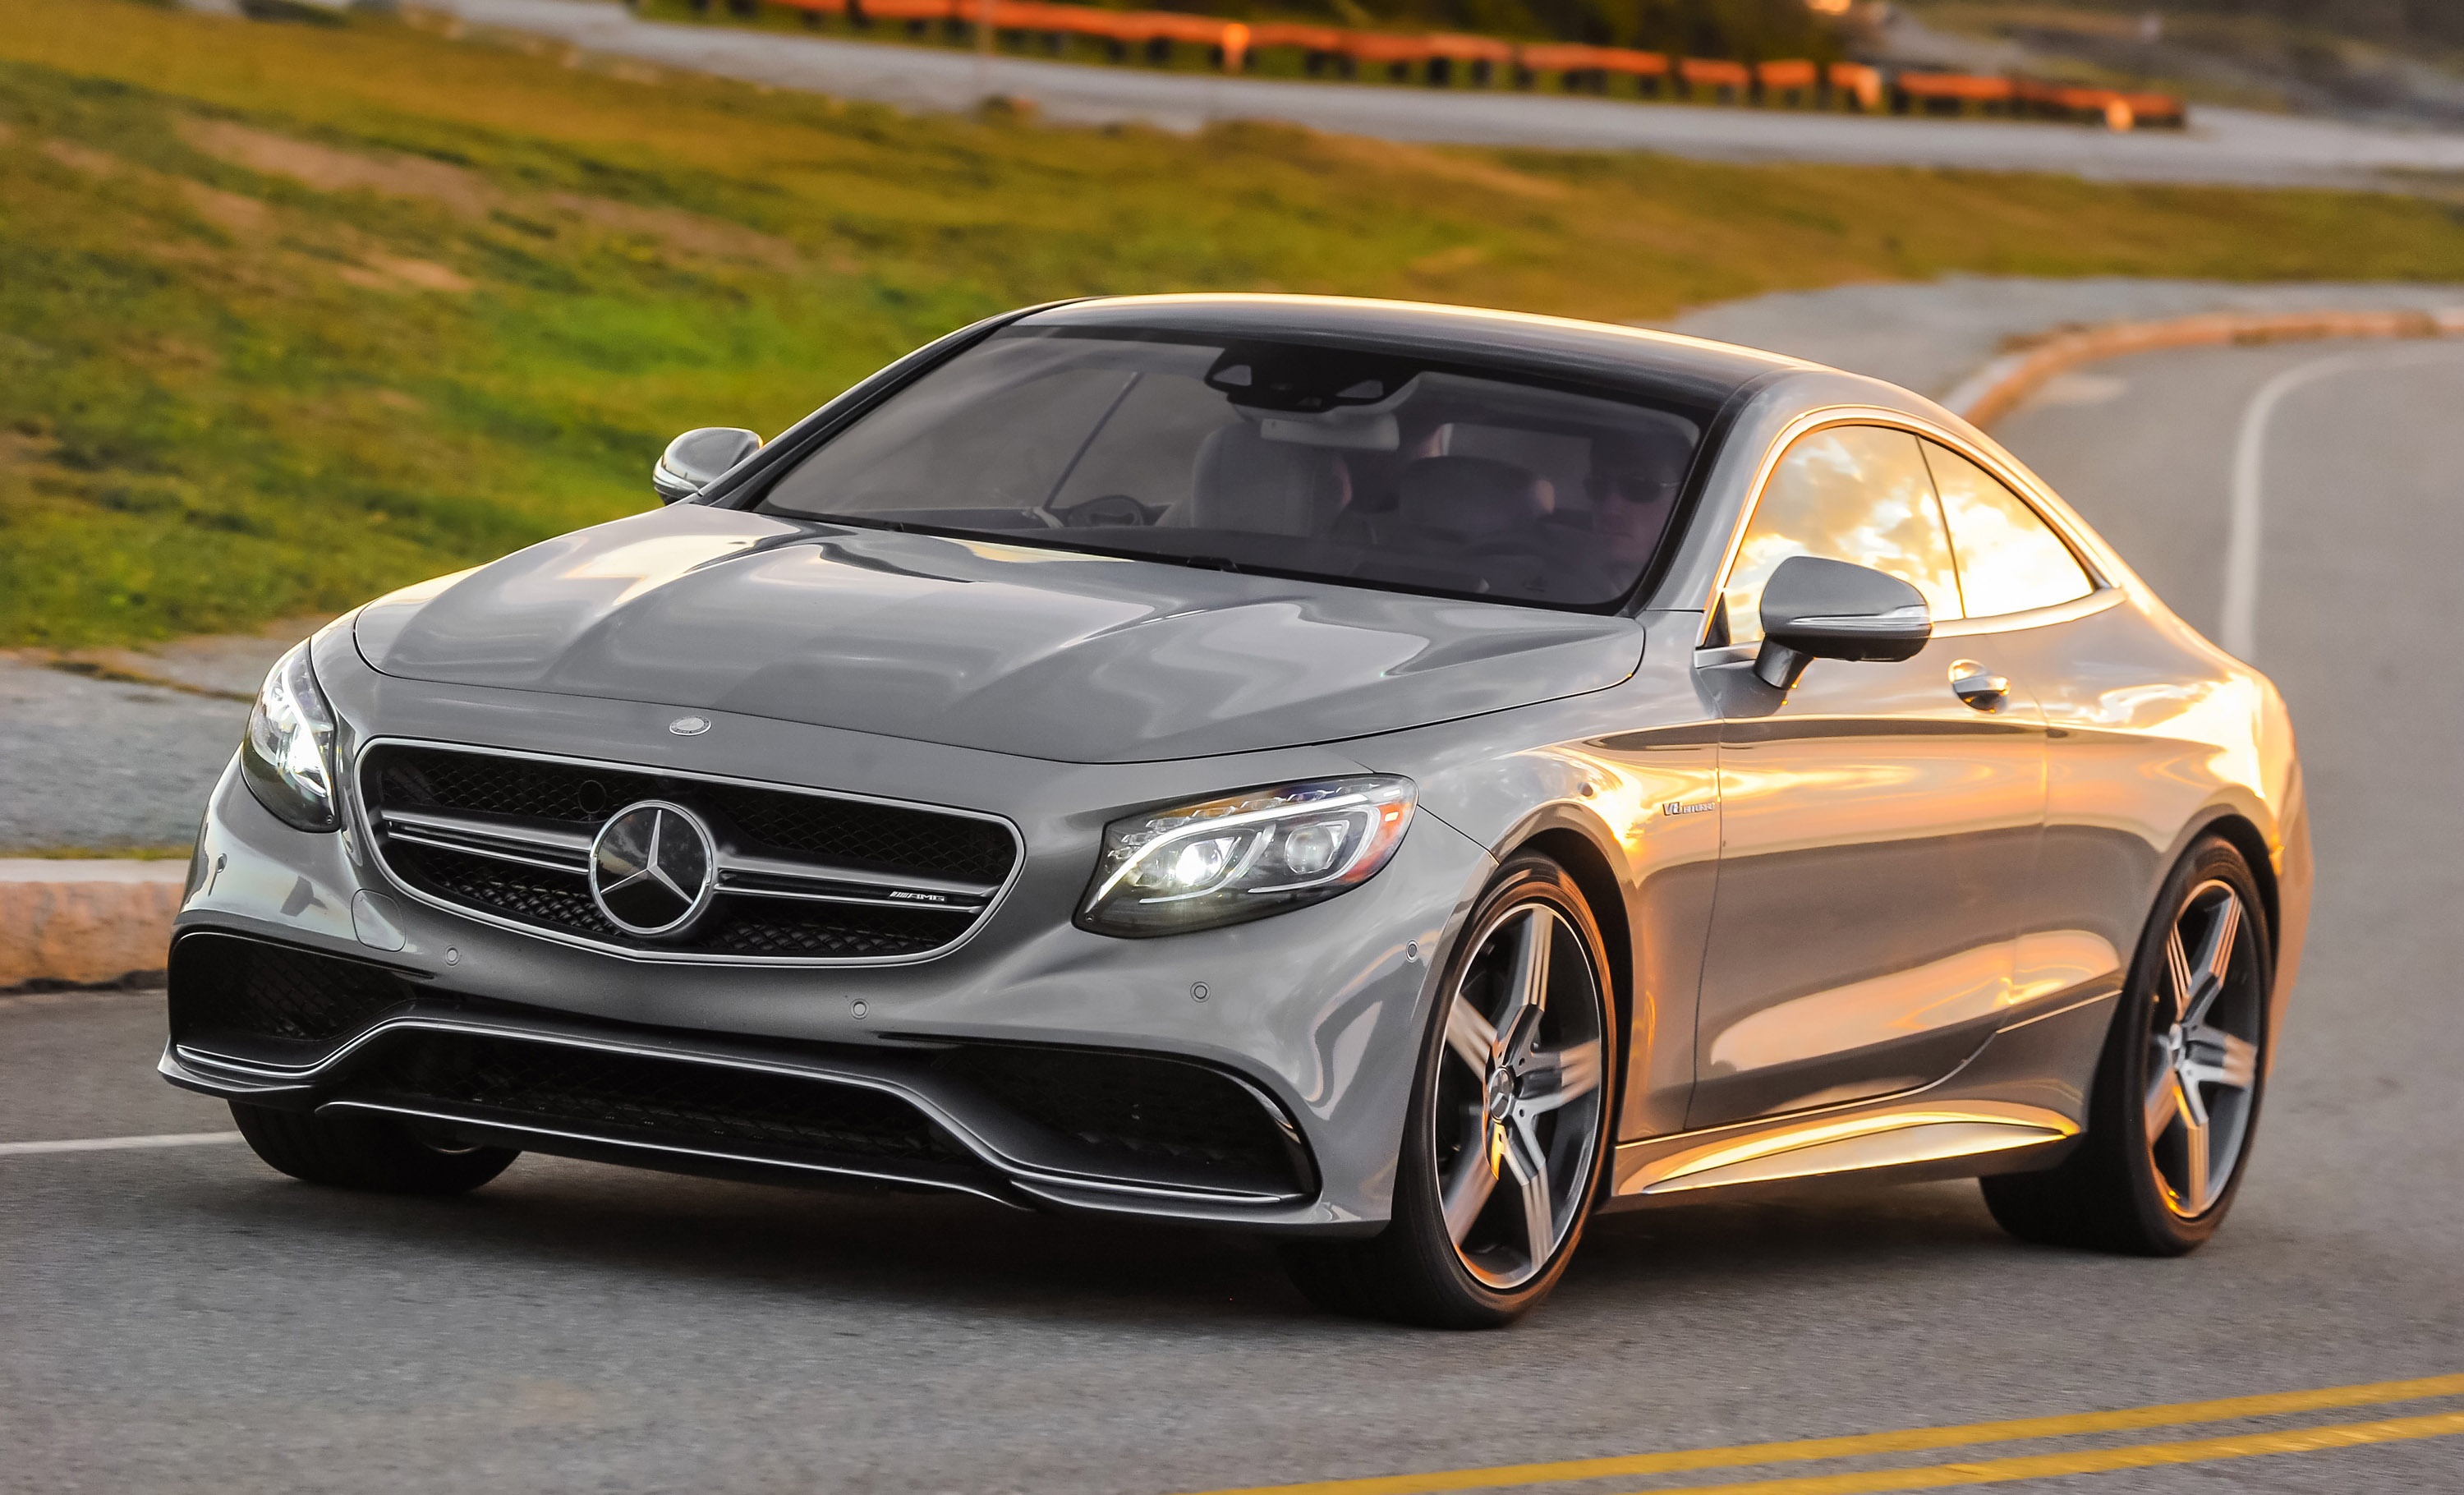 Meet the new 2015 mercedes benz s63 amg 4matic coupe for The latest mercedes benz